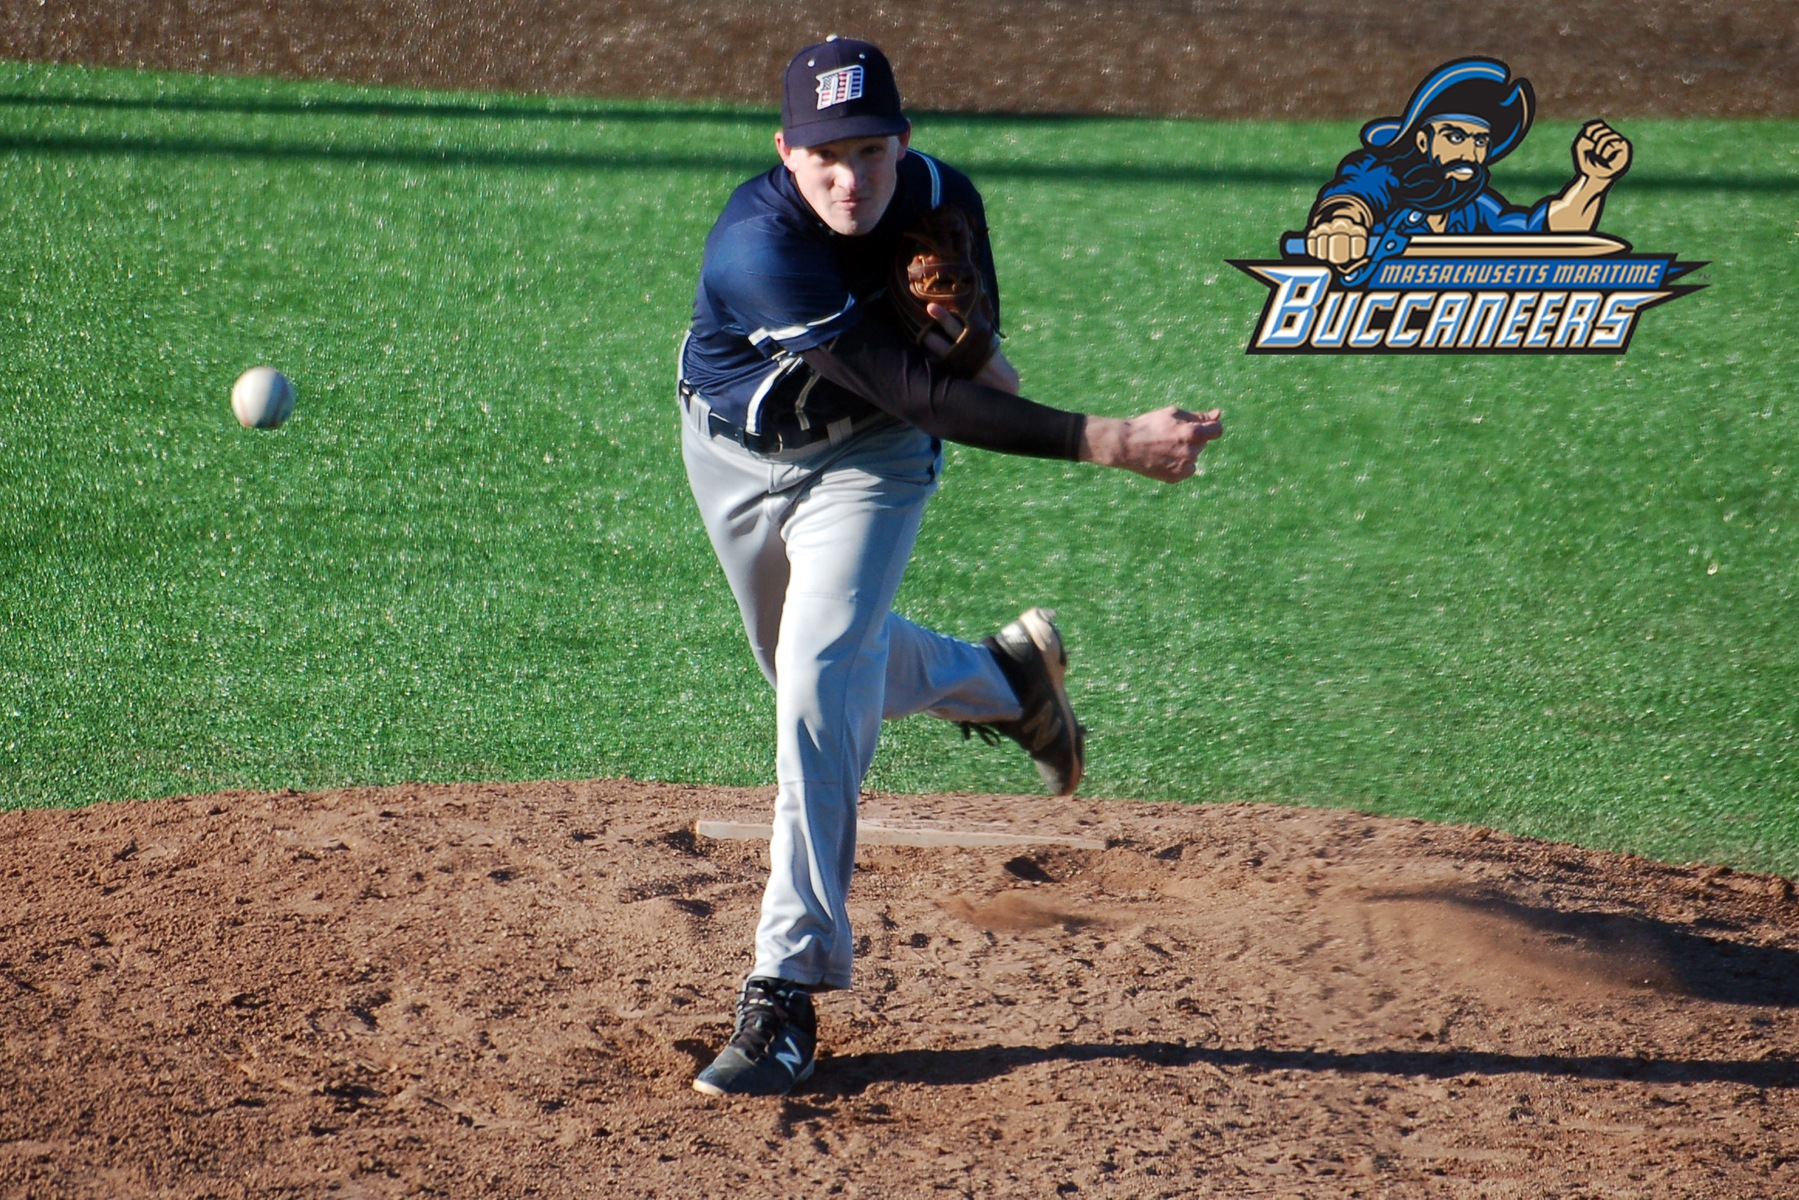 Thoener, Sances Deliver Game One Win in MASCAC Split